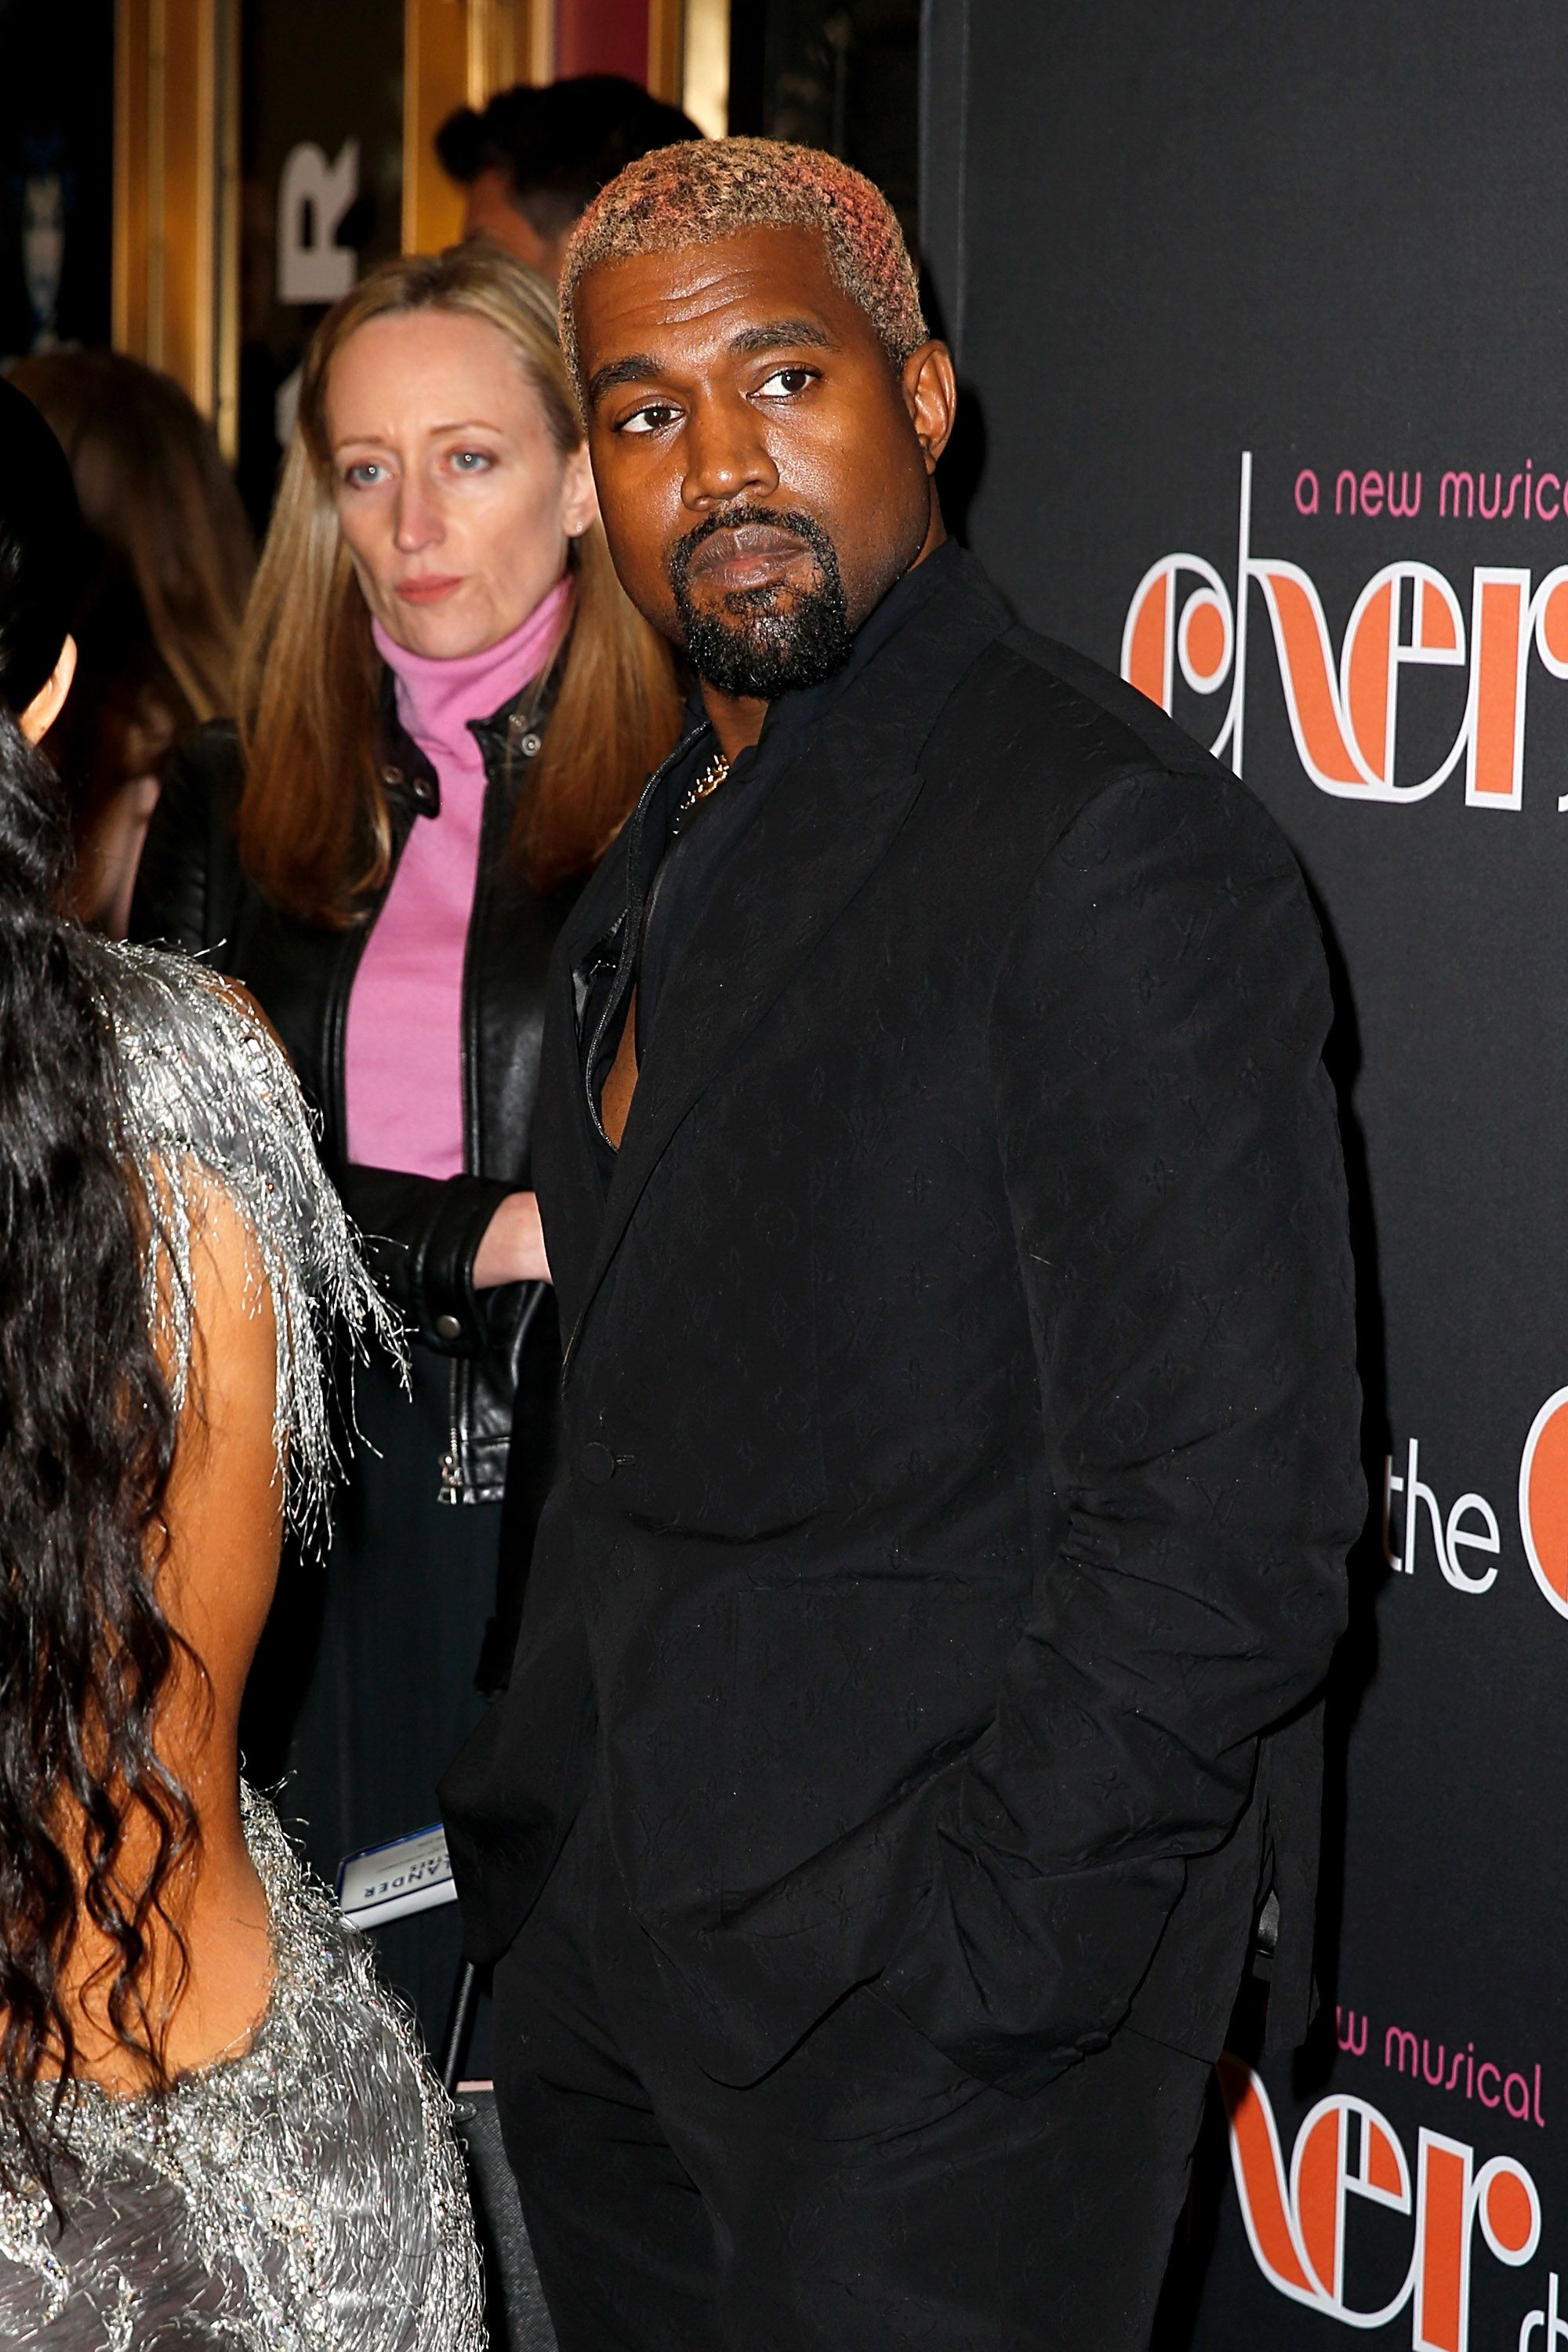 Kanye West Apologises After 'The Cher Show' Actor Catches Him Texting During